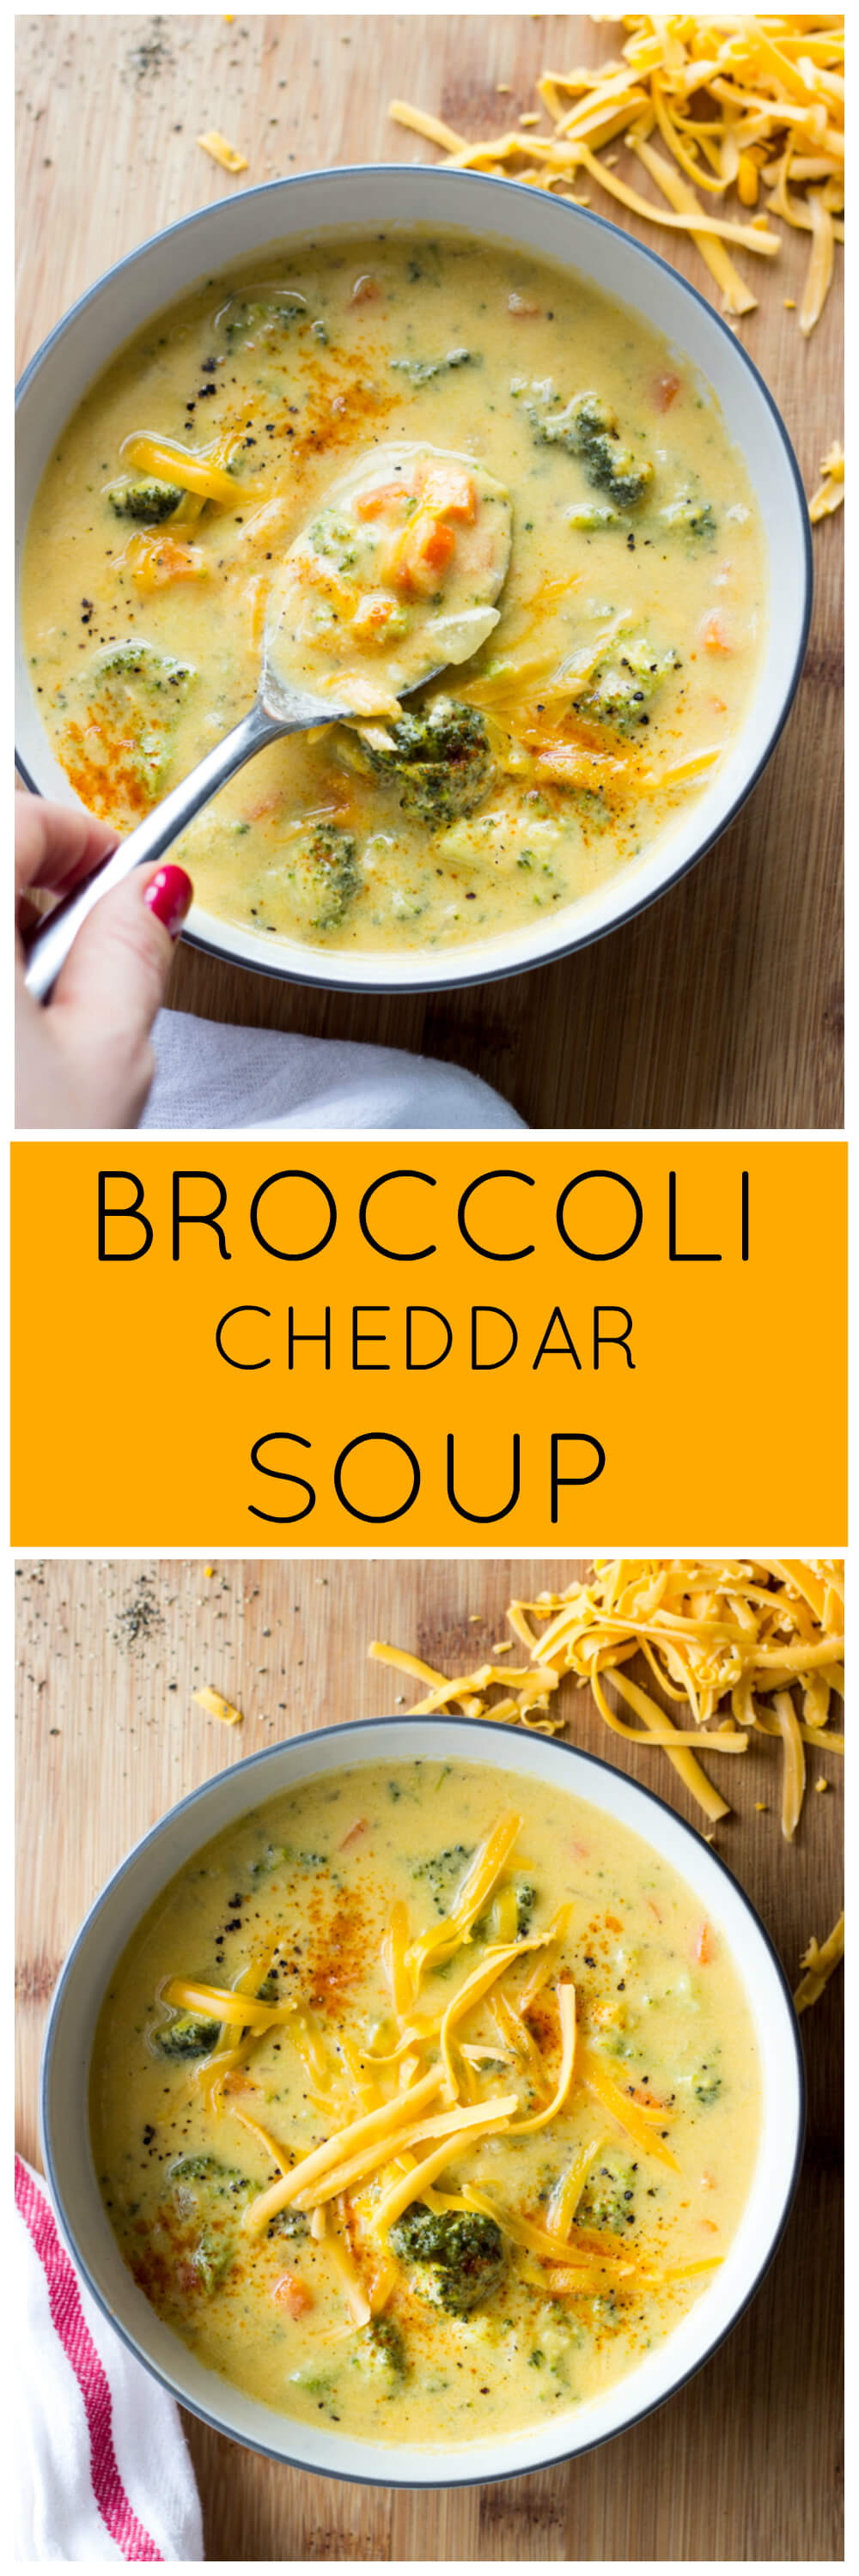 Broccoli Cheddar Soup - lightened up classic made with milk and olive oil. So creamy, rich and with fraction of the calories! | littlebroken.com @littlebroken